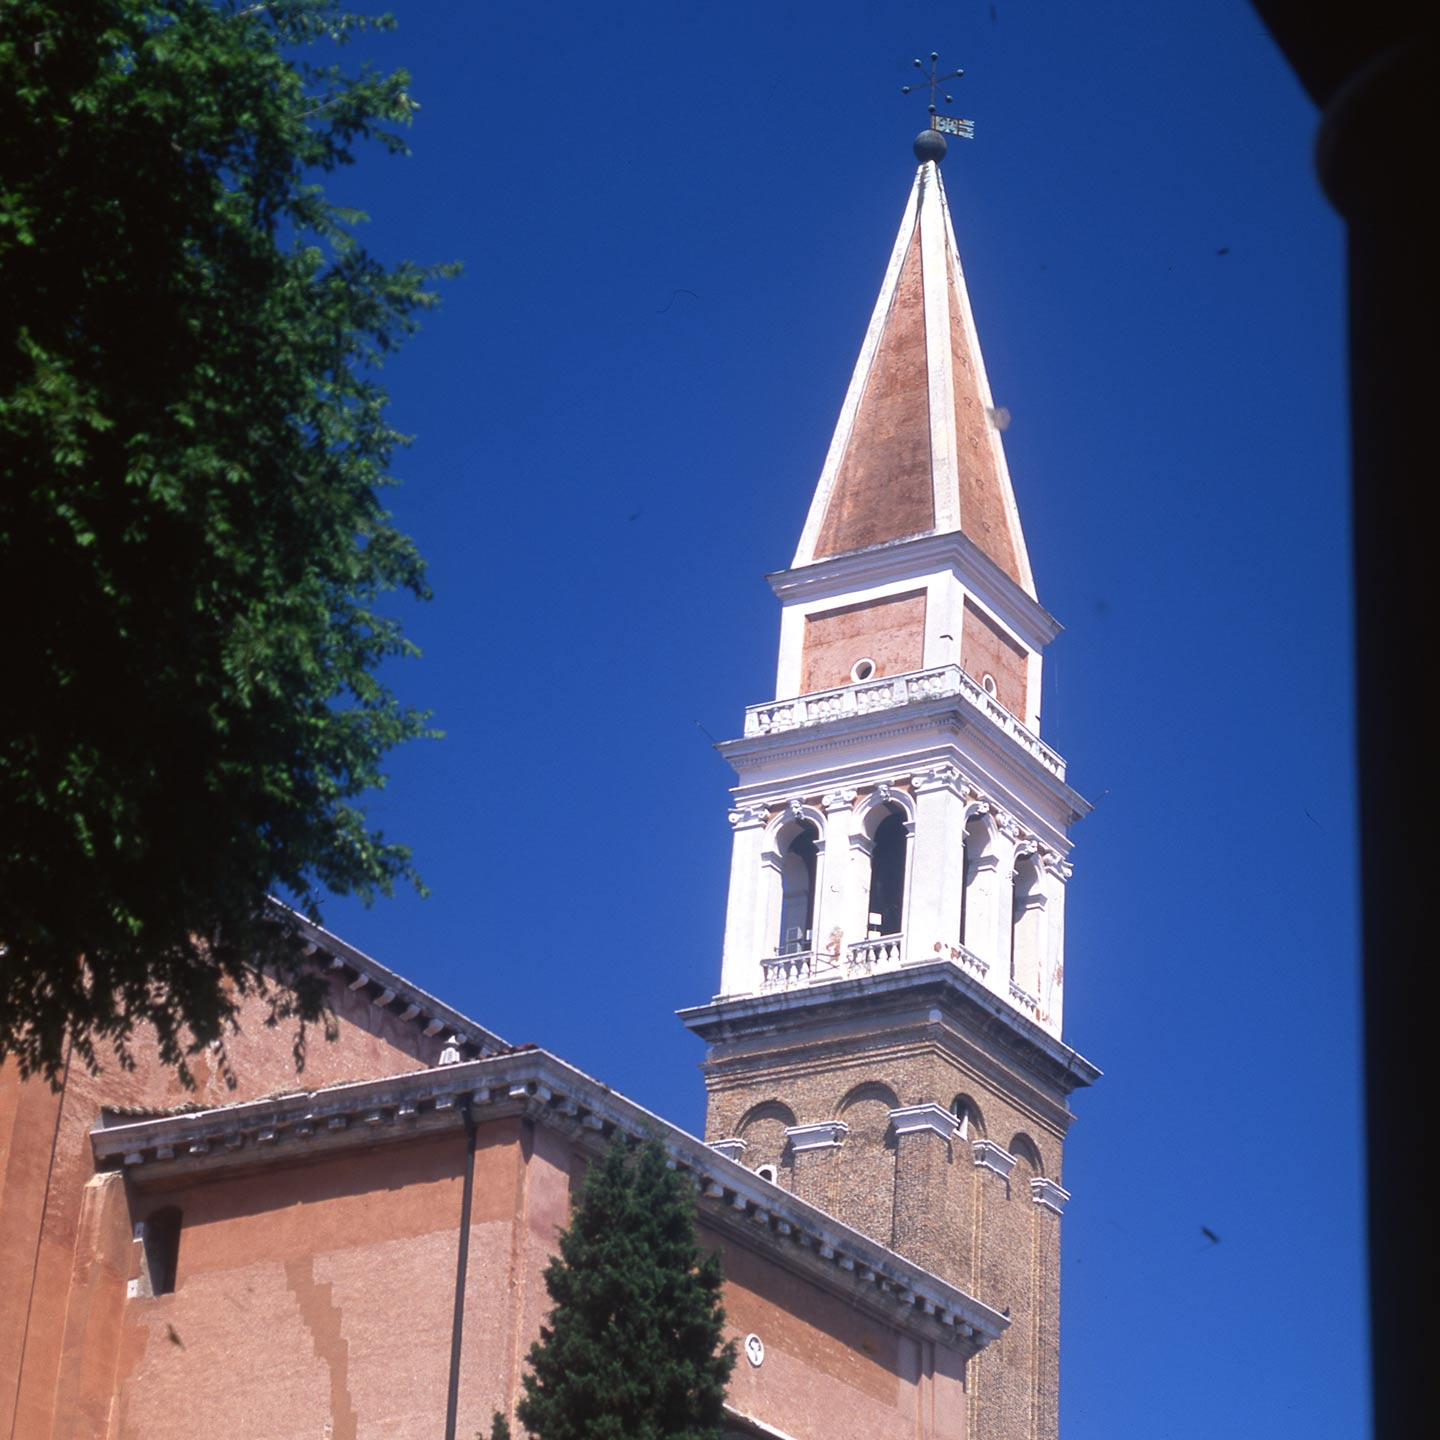 Image of the campanile of San Francesco della Vigna church in Venice